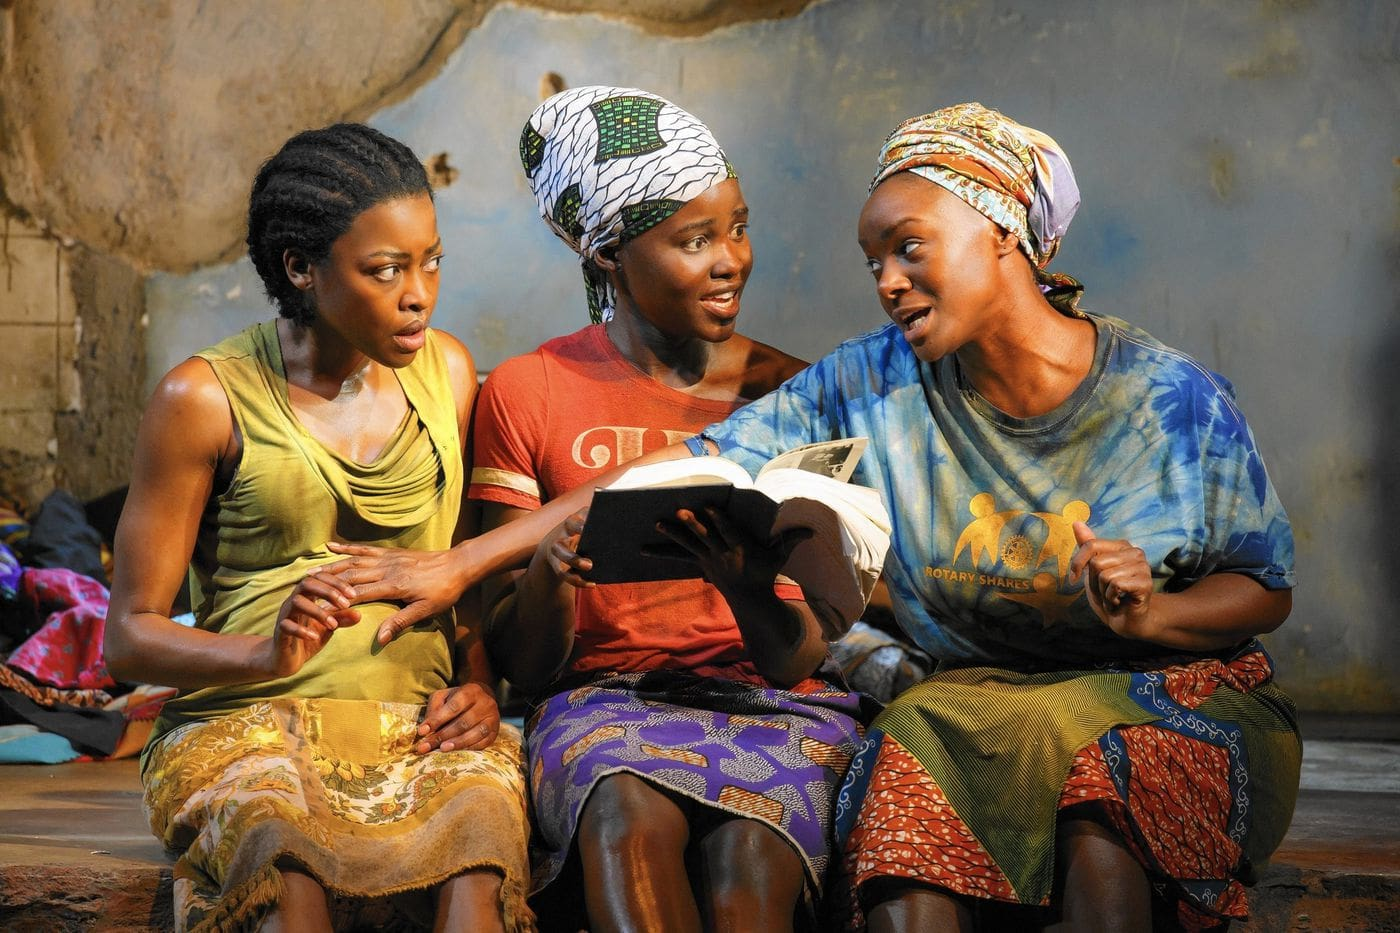 Pascale Armand, Lupita Nyong'o and Saycon Sengbloh in Eclipsed (Photo: Joan Marcus)